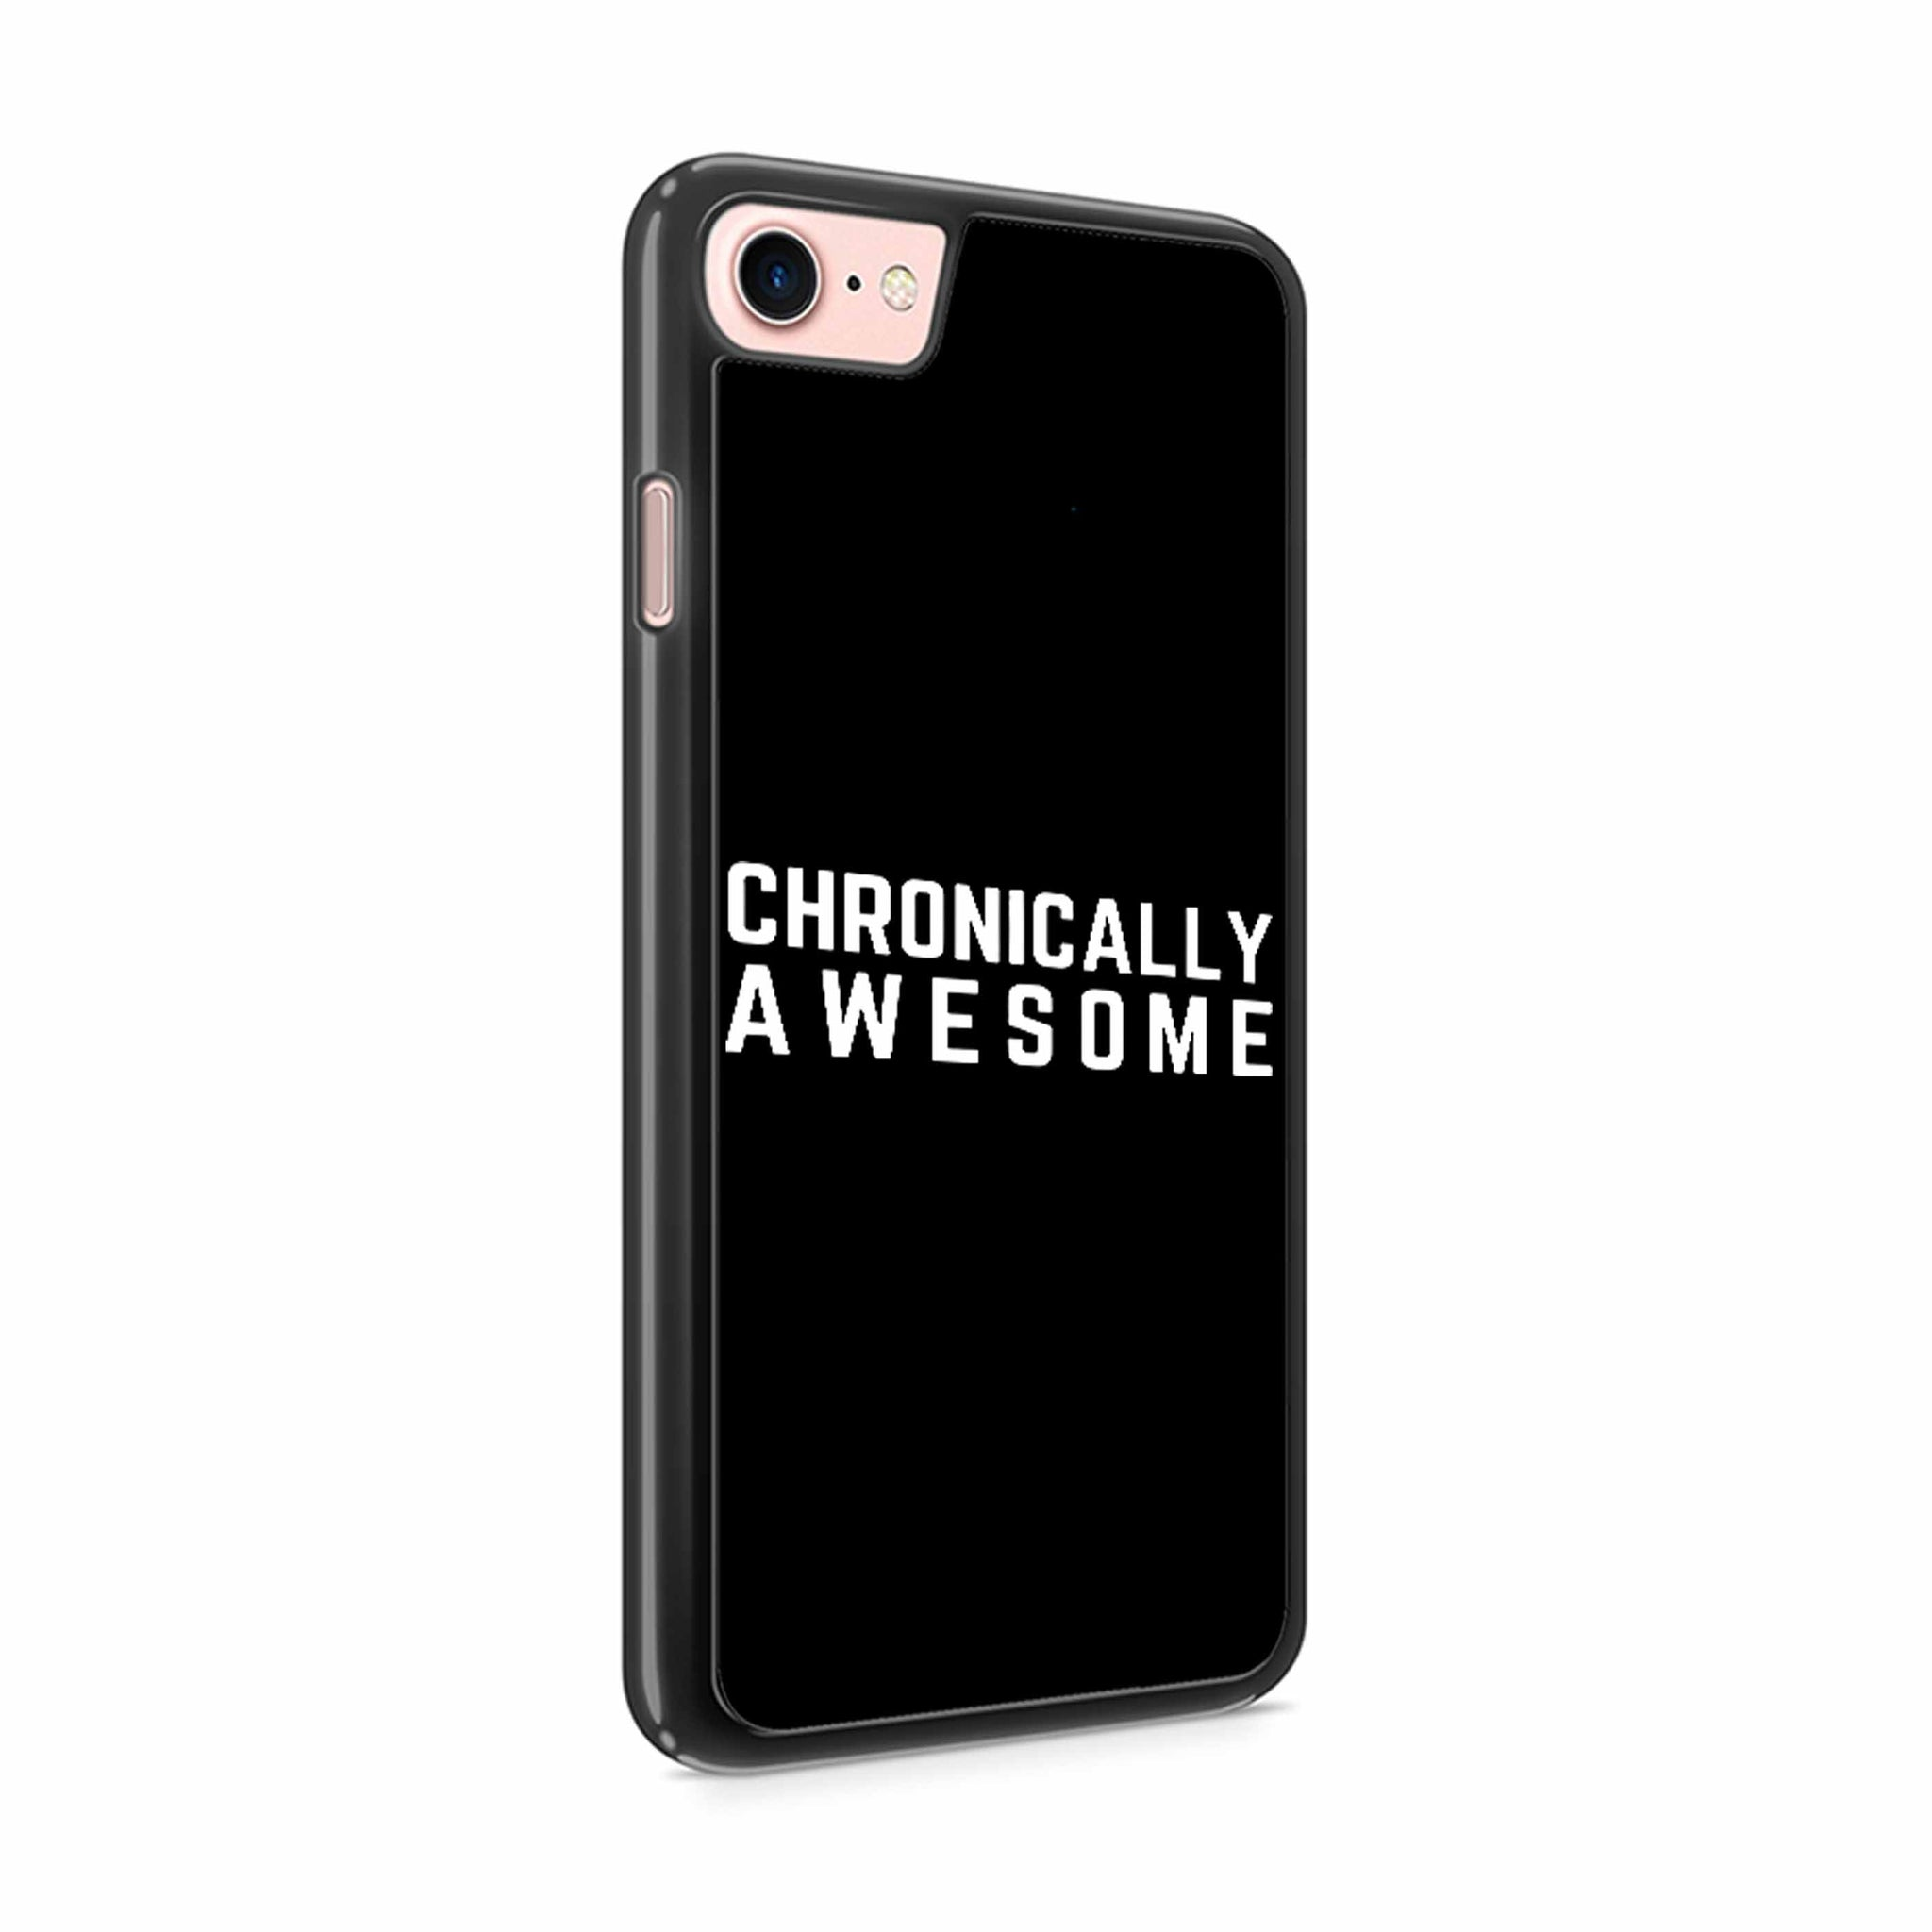 Chronically Awesome iPhone 8 / 8 Plus Case